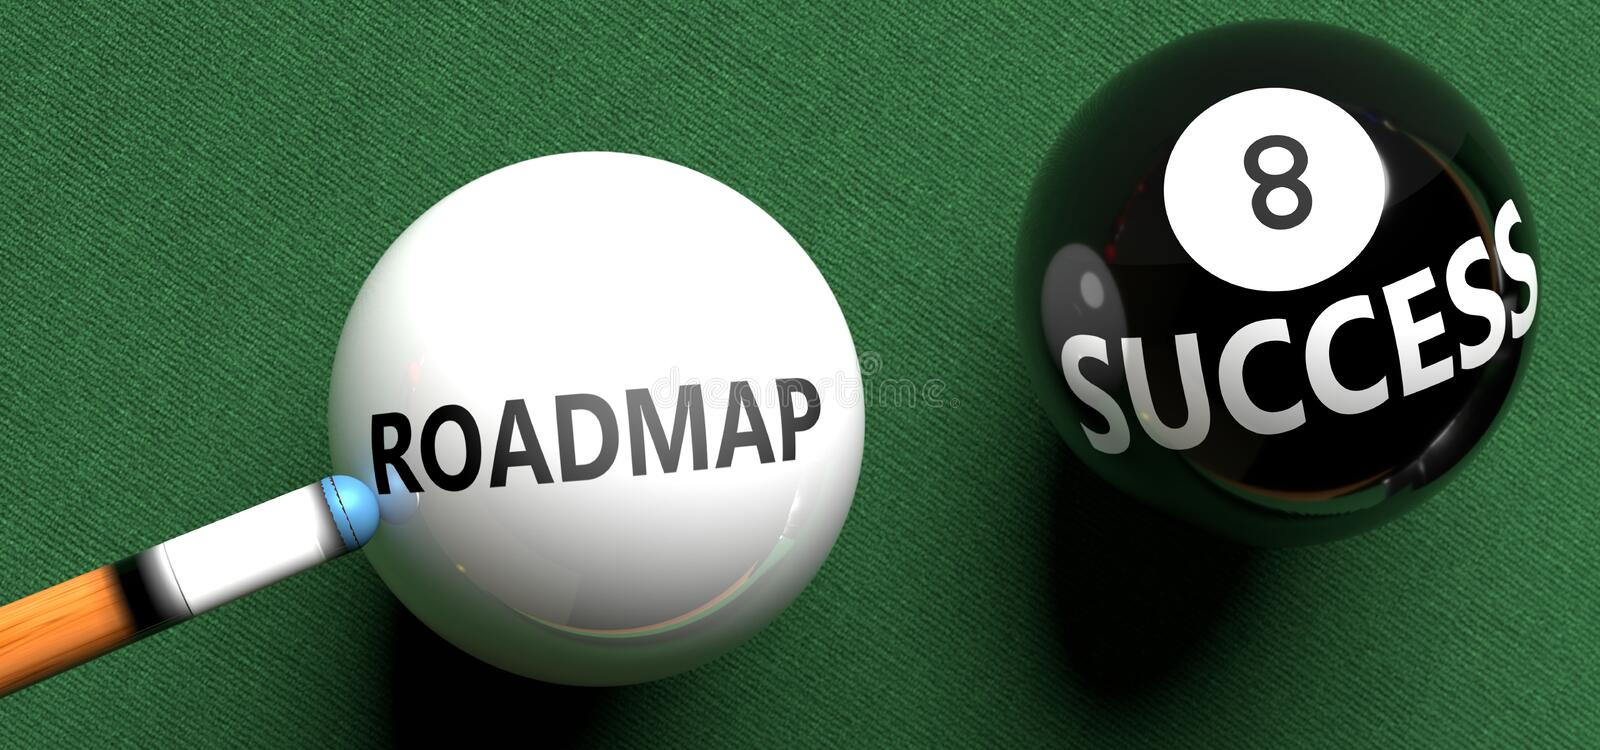 Roadmap brings success - pictured as word Roadmap on a pool ball, to symbolize that Roadmap can initiate success, 3d illustration.  stock illustration